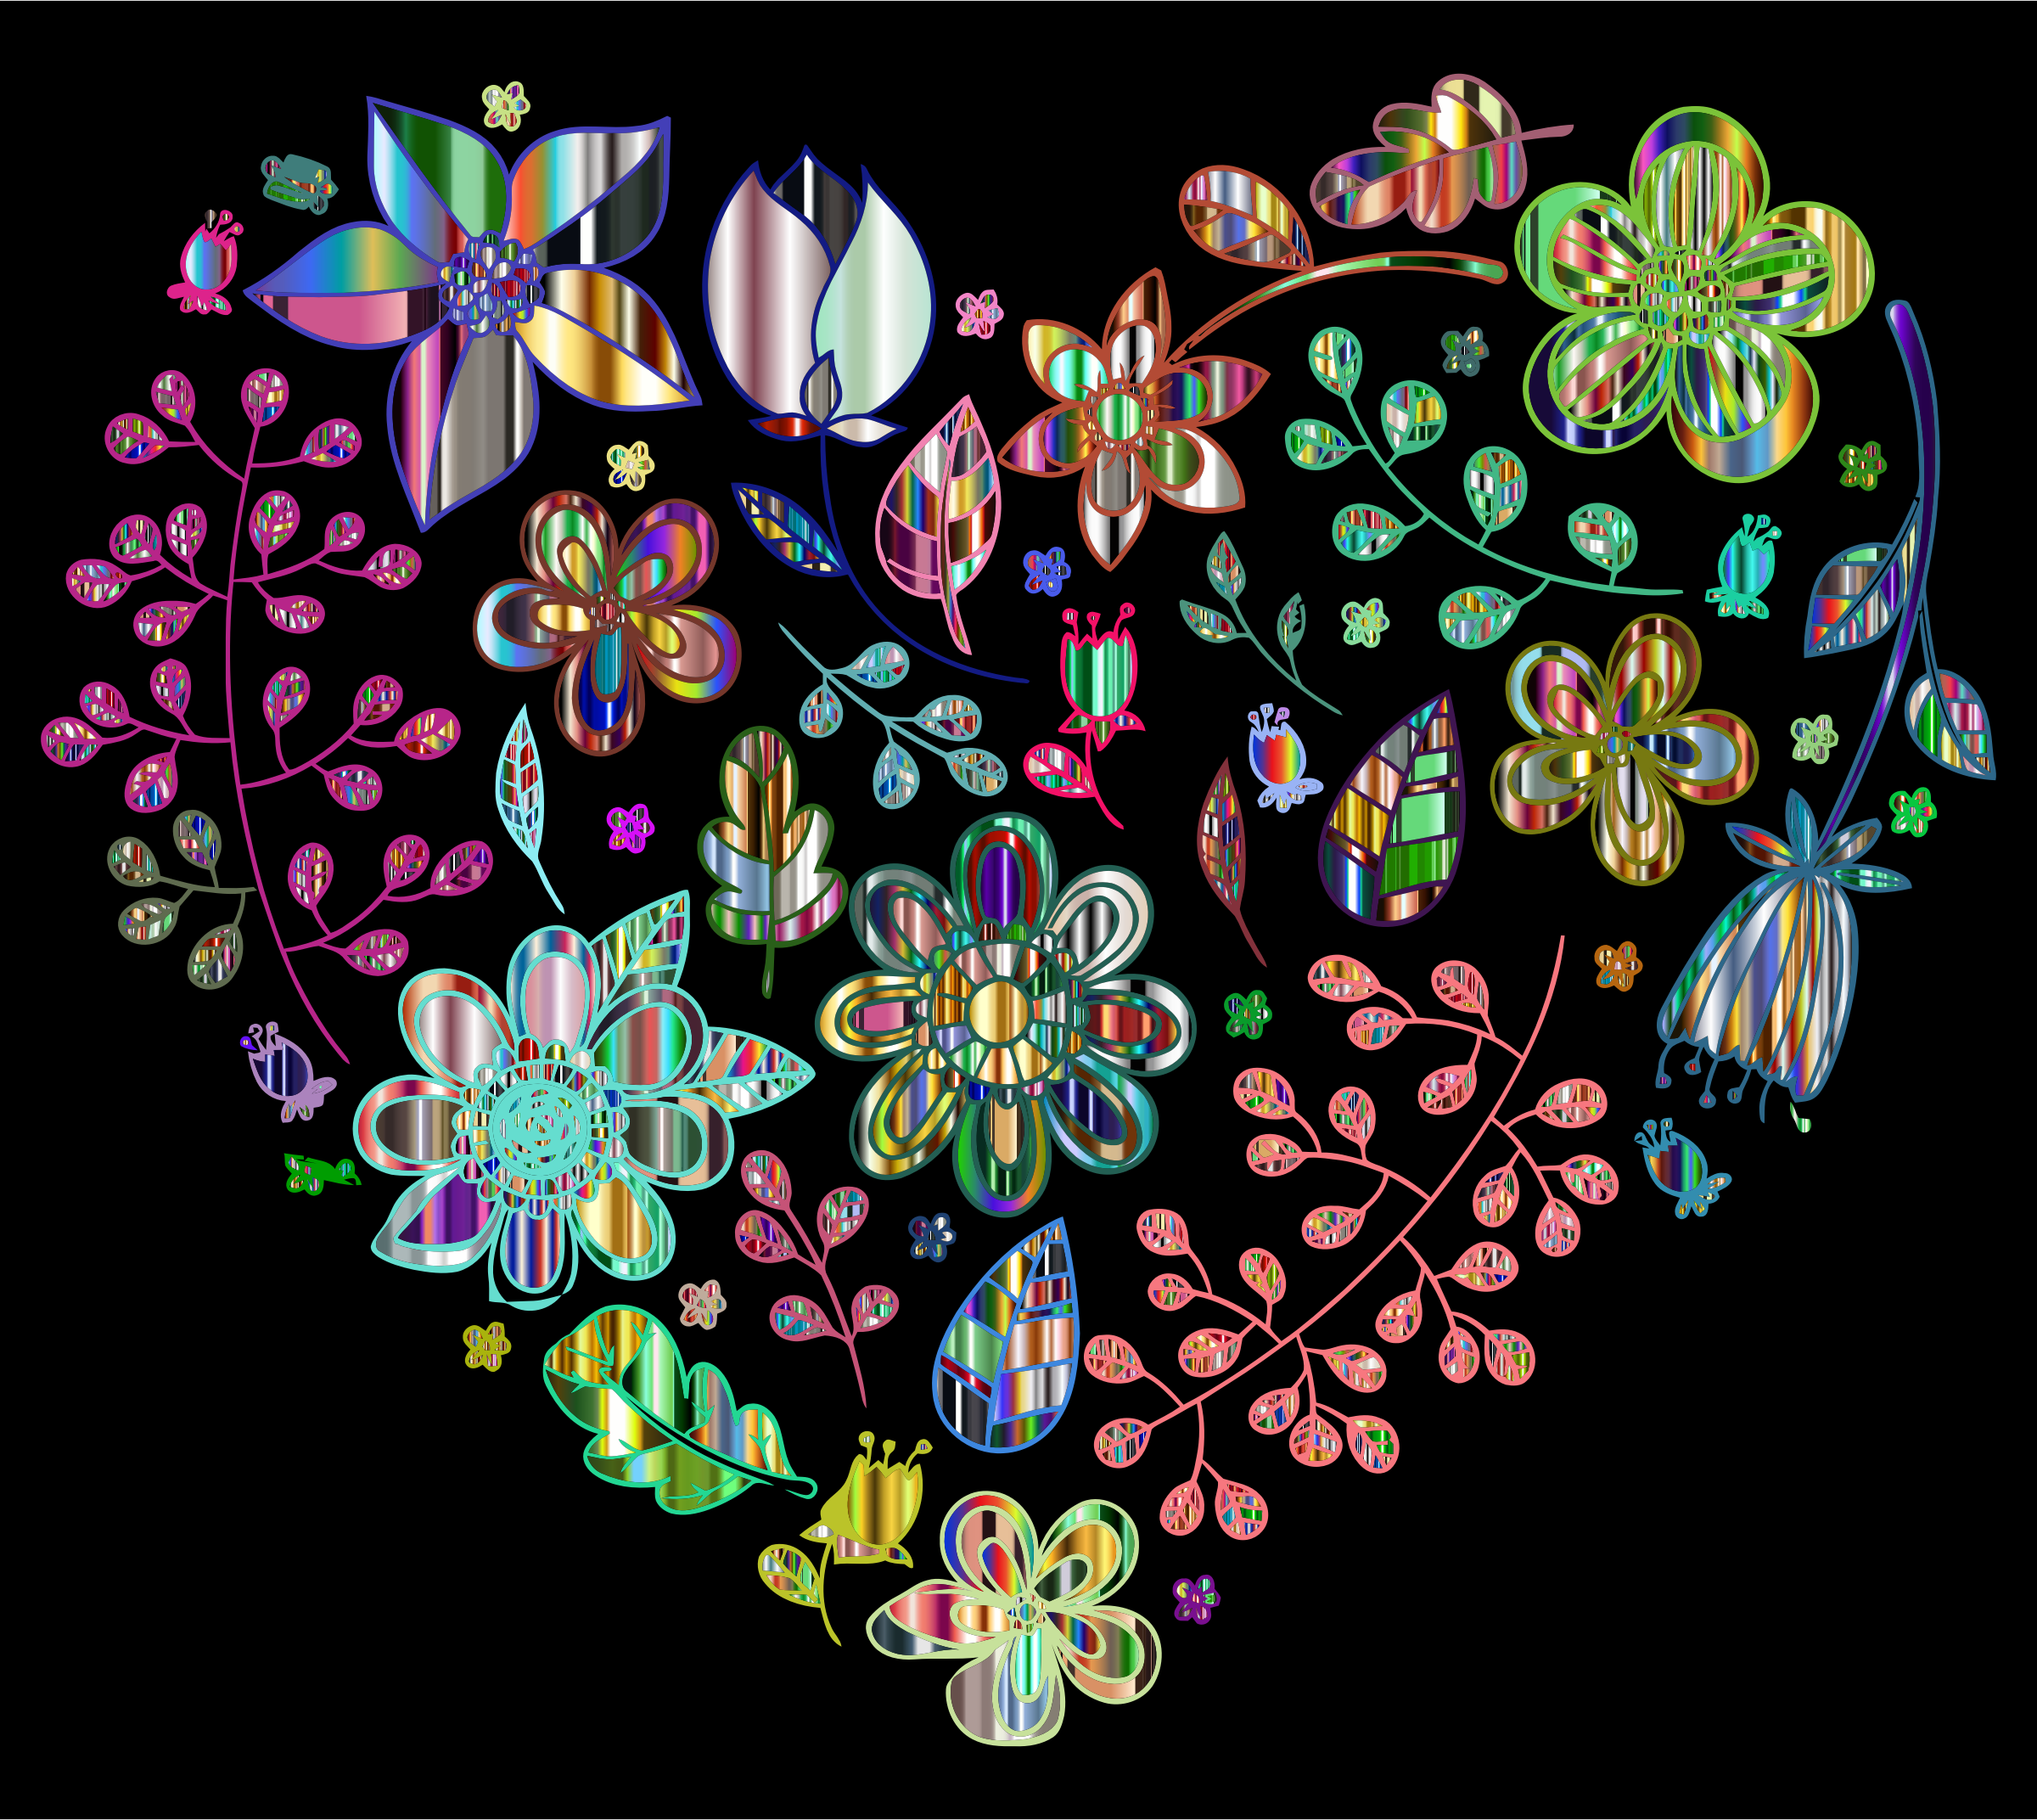 Prismatic Psychedelic Floral Heart 6 by GDJ